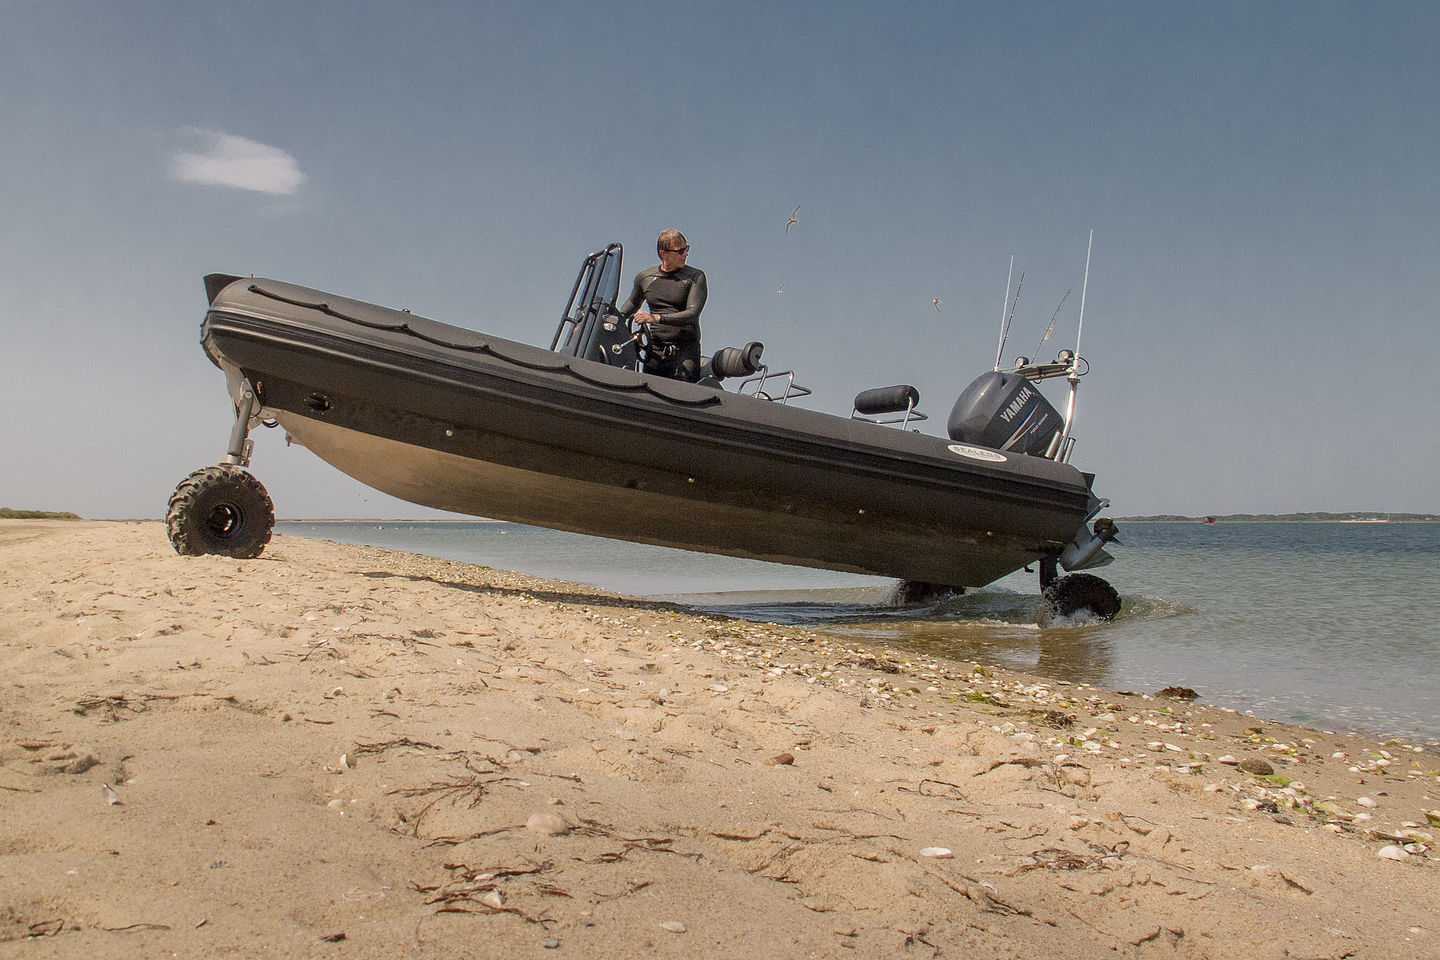 007 Inflatable Amphibious Boat at the Gut